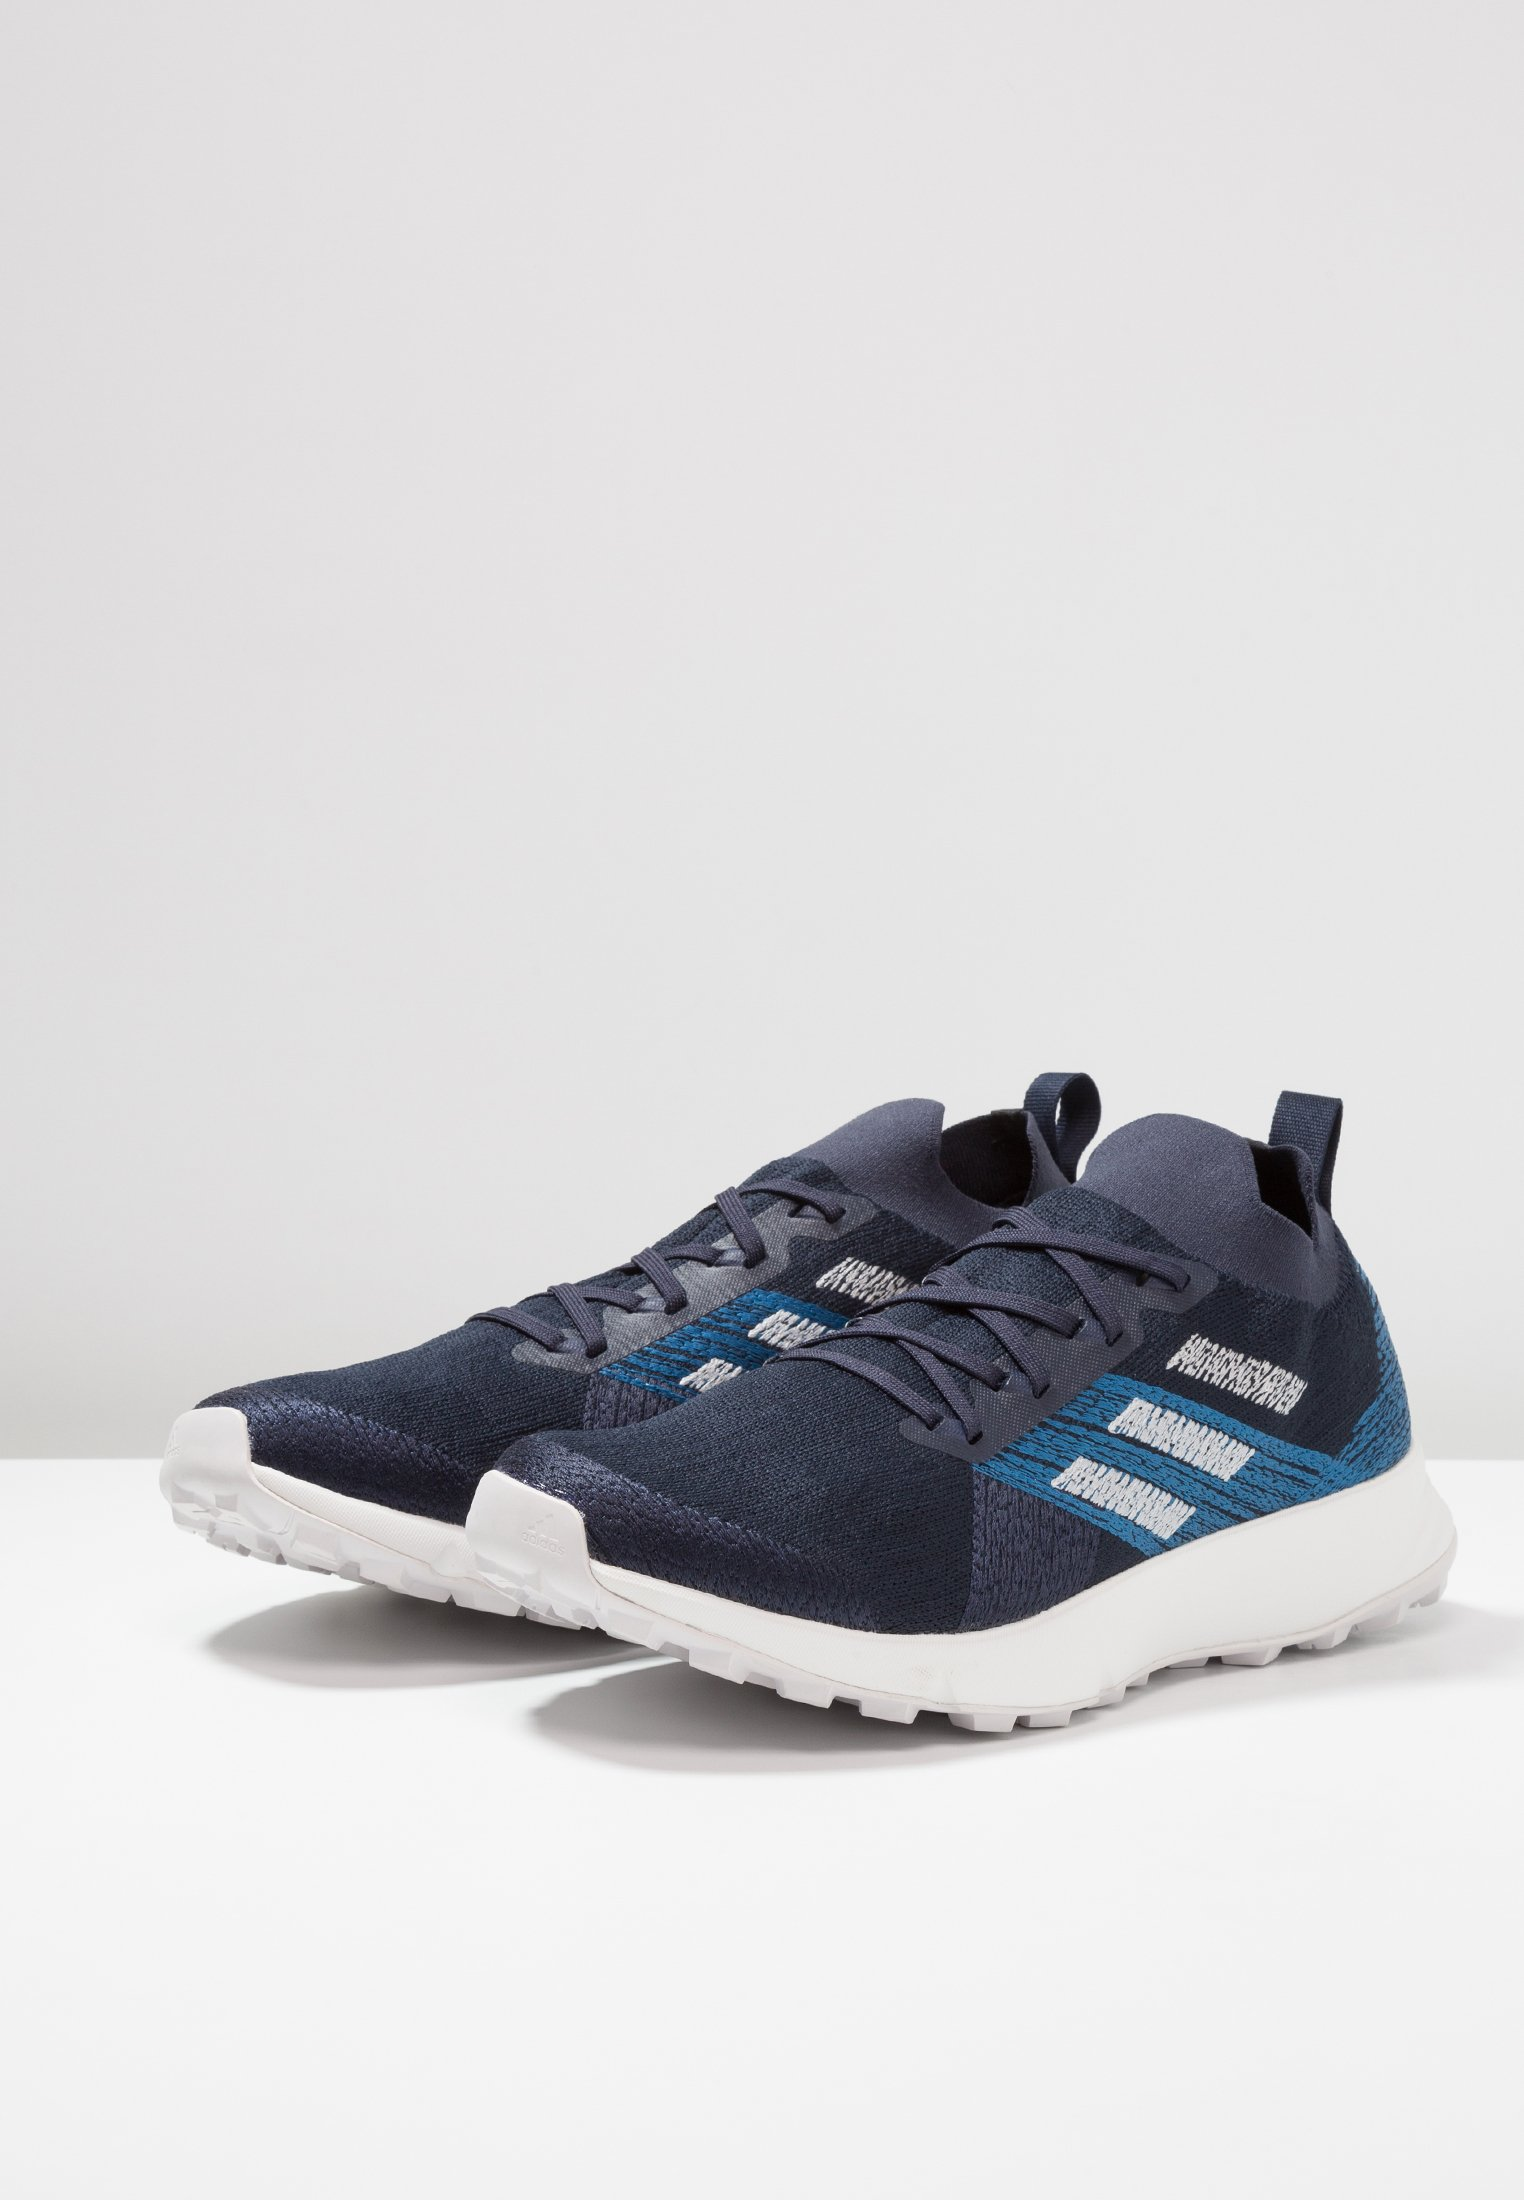 ParleyChaussures One Ink grey Running Two core Blue Adidas Performance Terrex De Legend nyv8N0wOPm